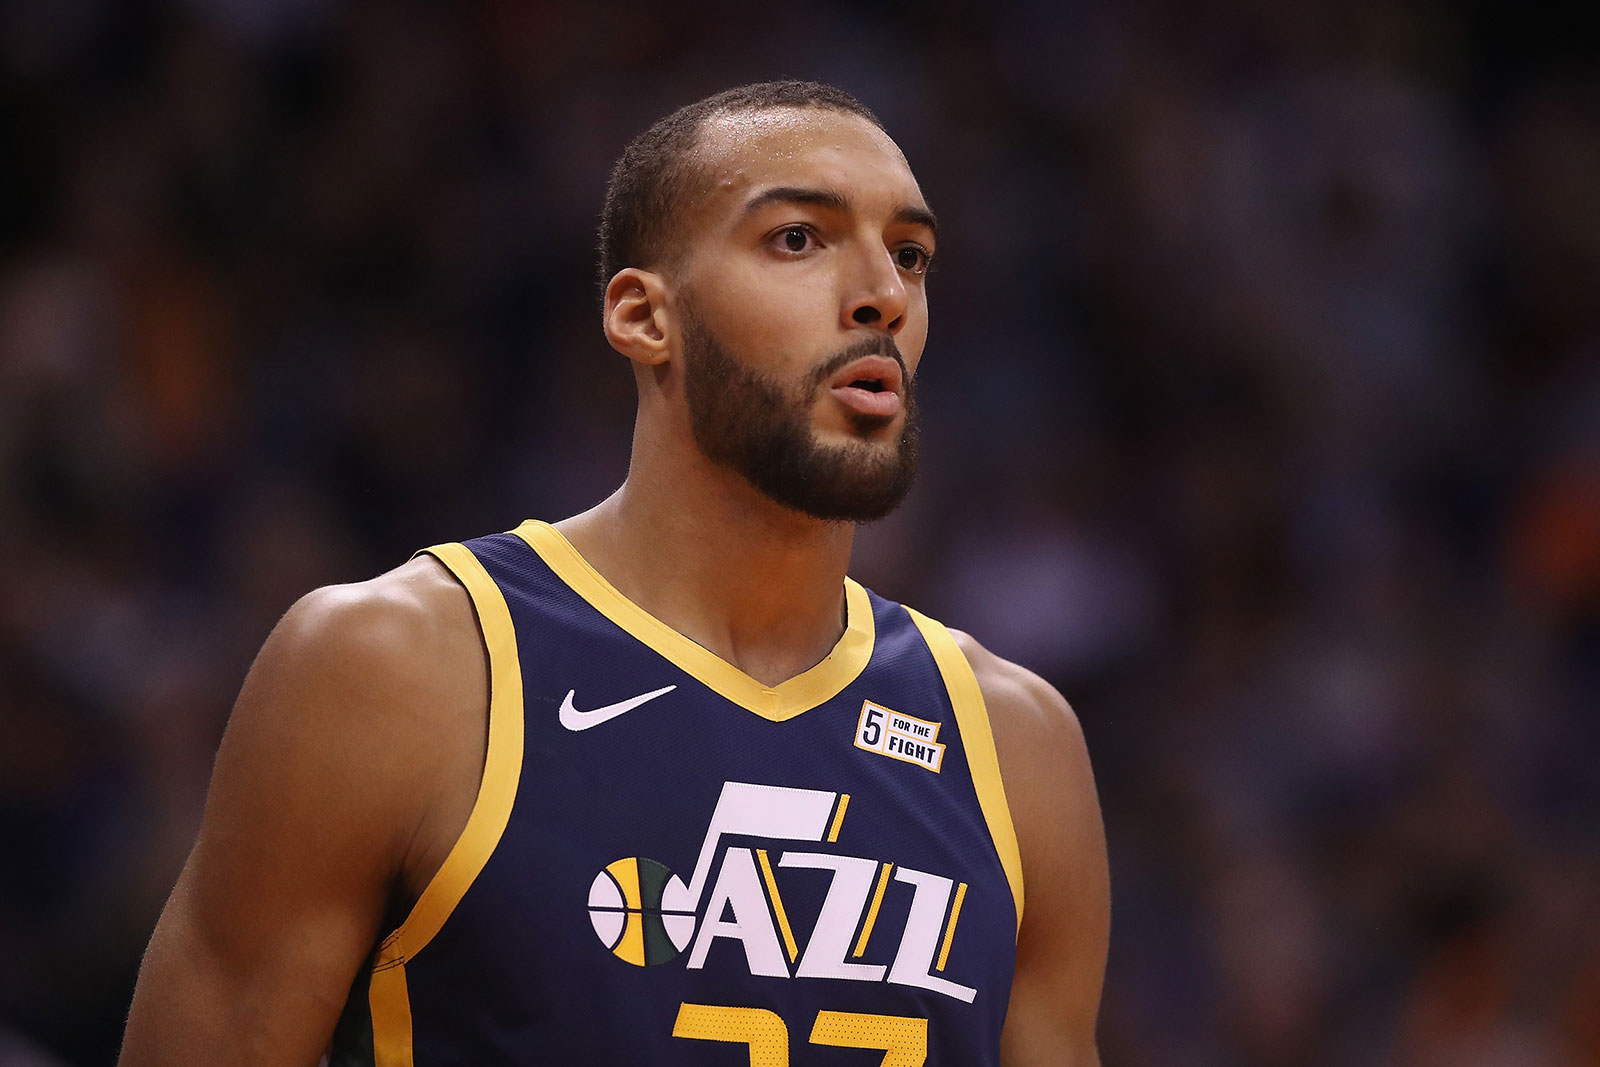 Utah Jazz center Rudy Gobert plays during the first half of an NBA game against the Phoenix Suns on October 28, 2019.